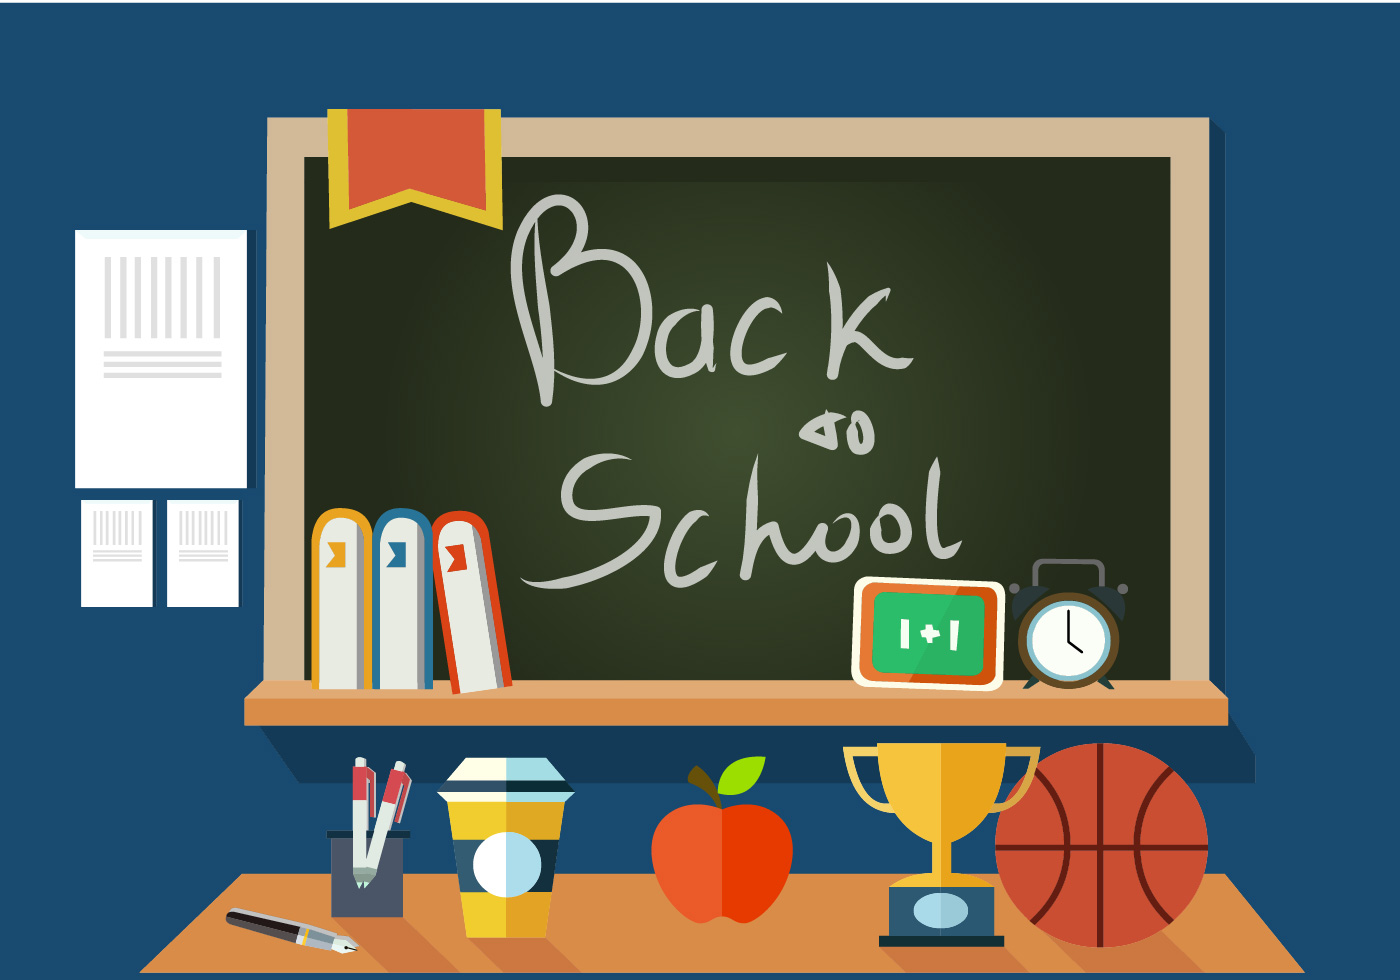 back to school vector - photo #38